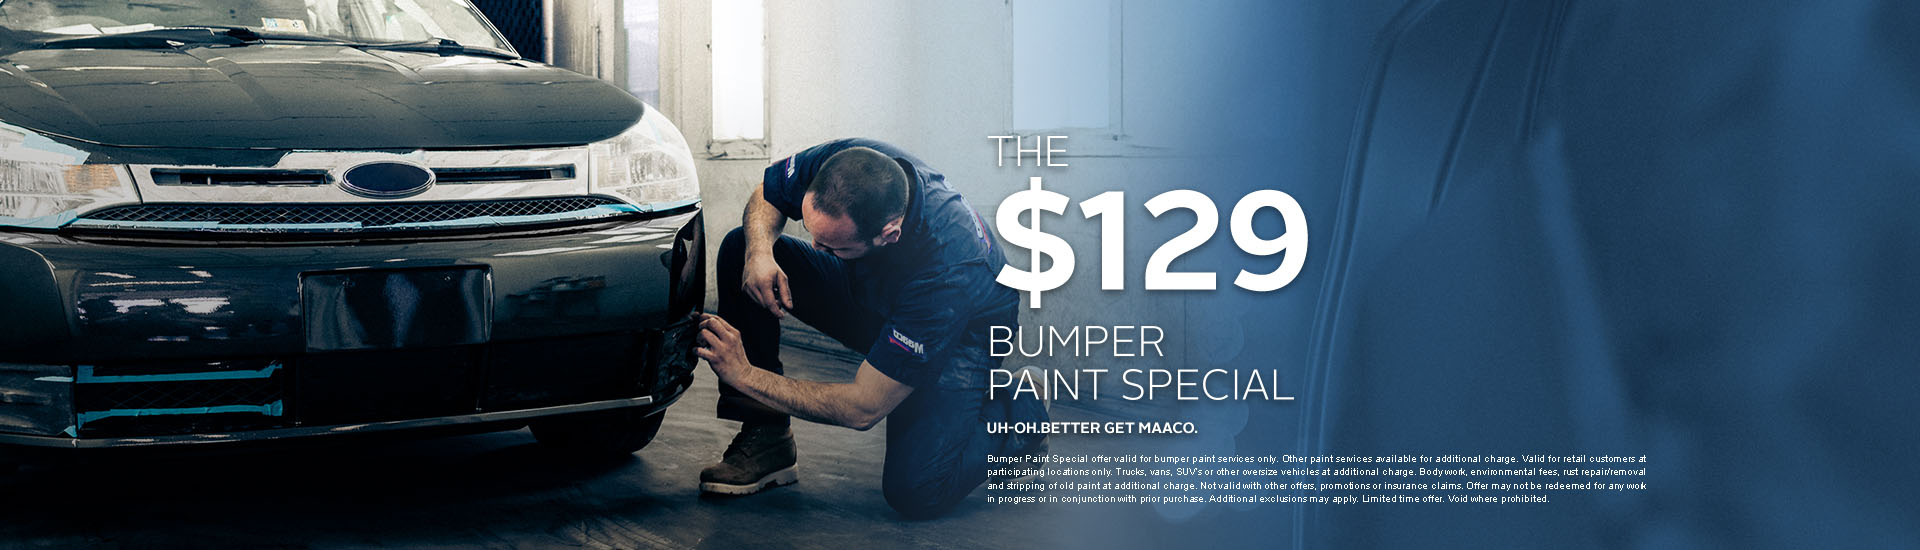 Maaco: Bumper Paint Special Starting at $129